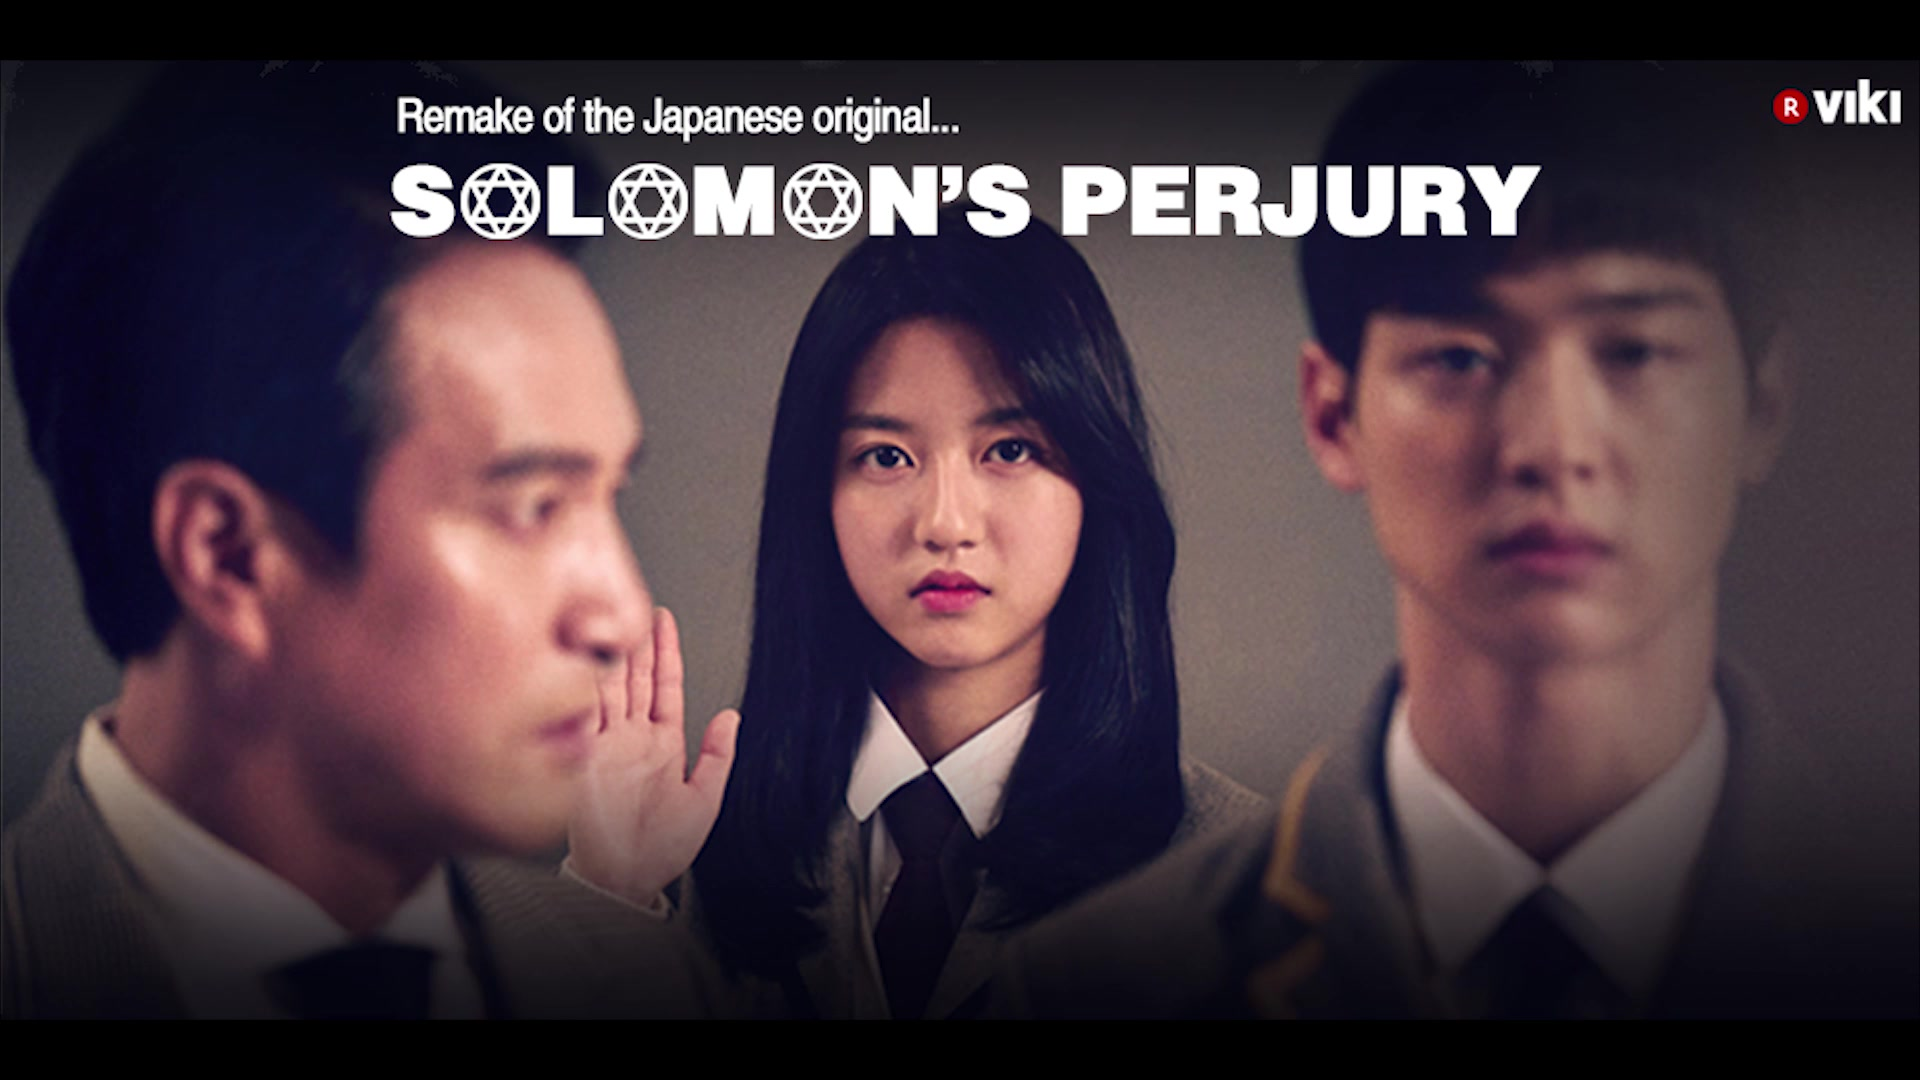 Shoutout to Viki Fans: Solomon's Perjury